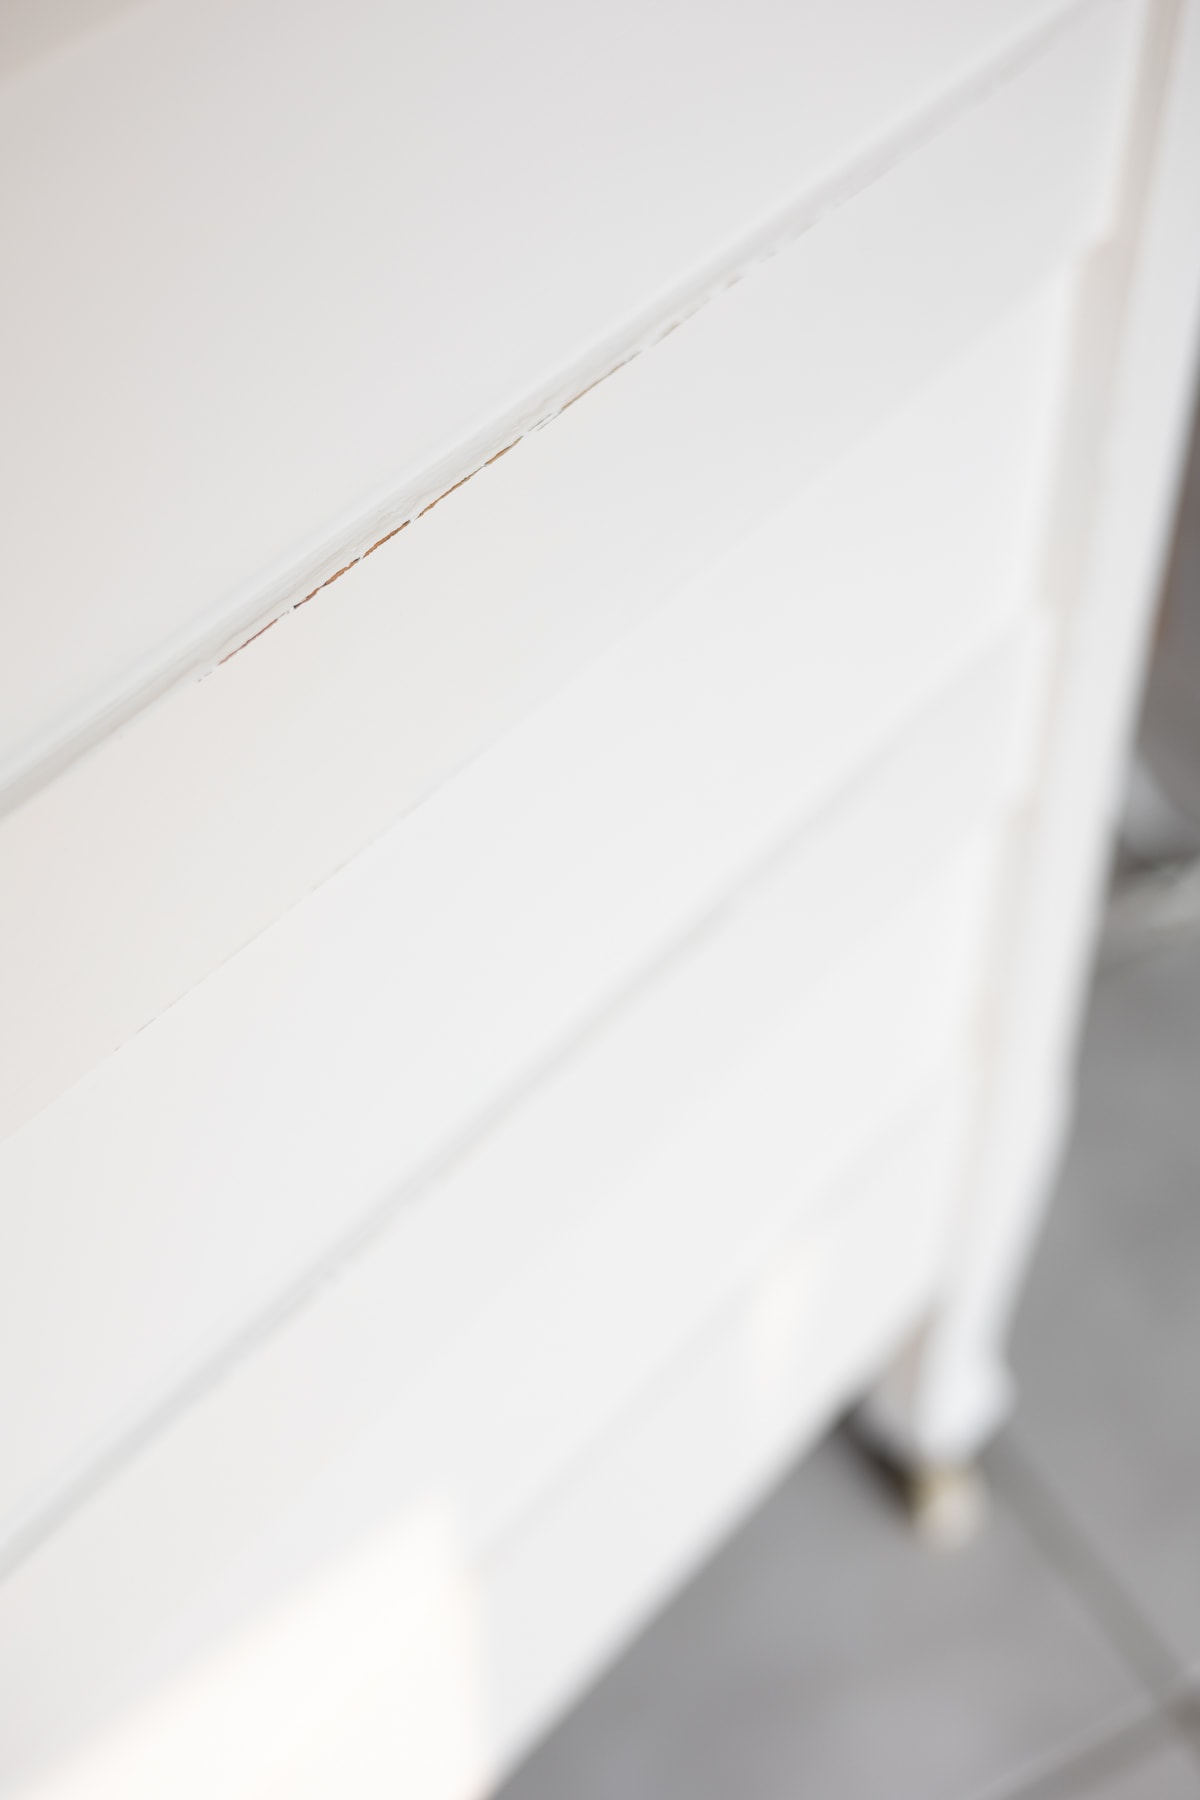 The side of a white dresser showing the difference between a waxed and an unwaxed finish.